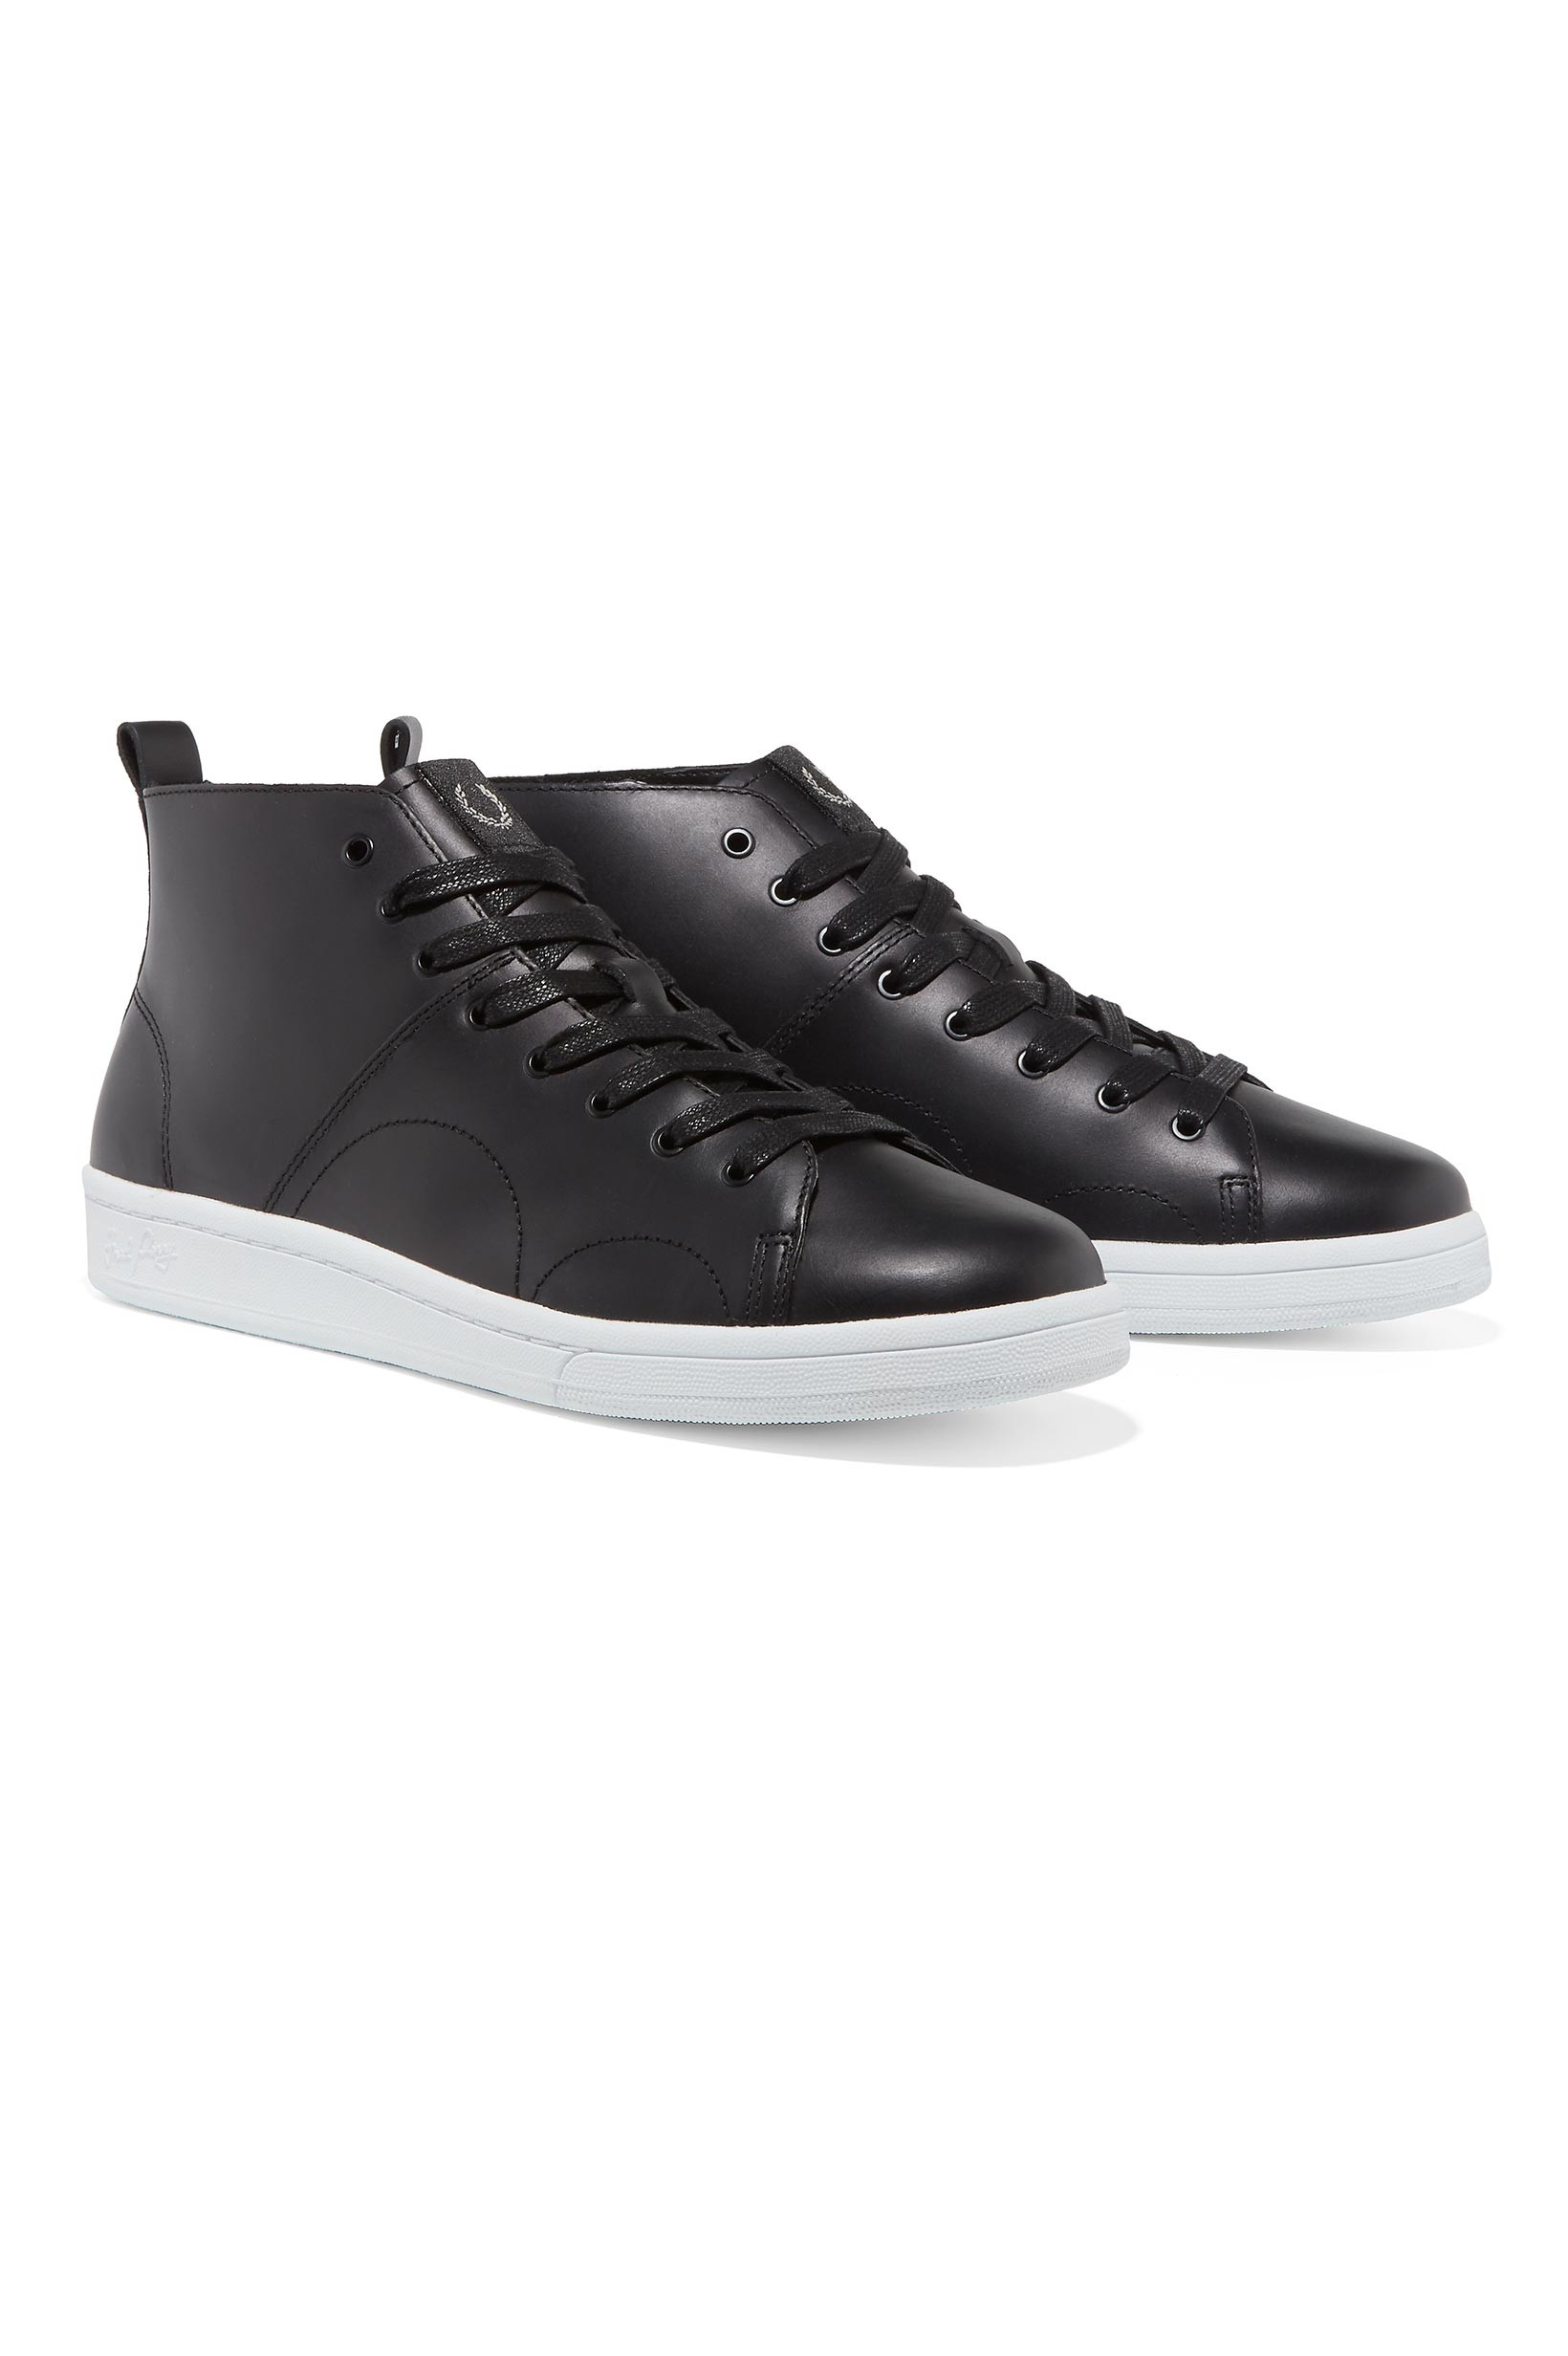 Fred Perry Black X George Cox Monkey Boot Leather